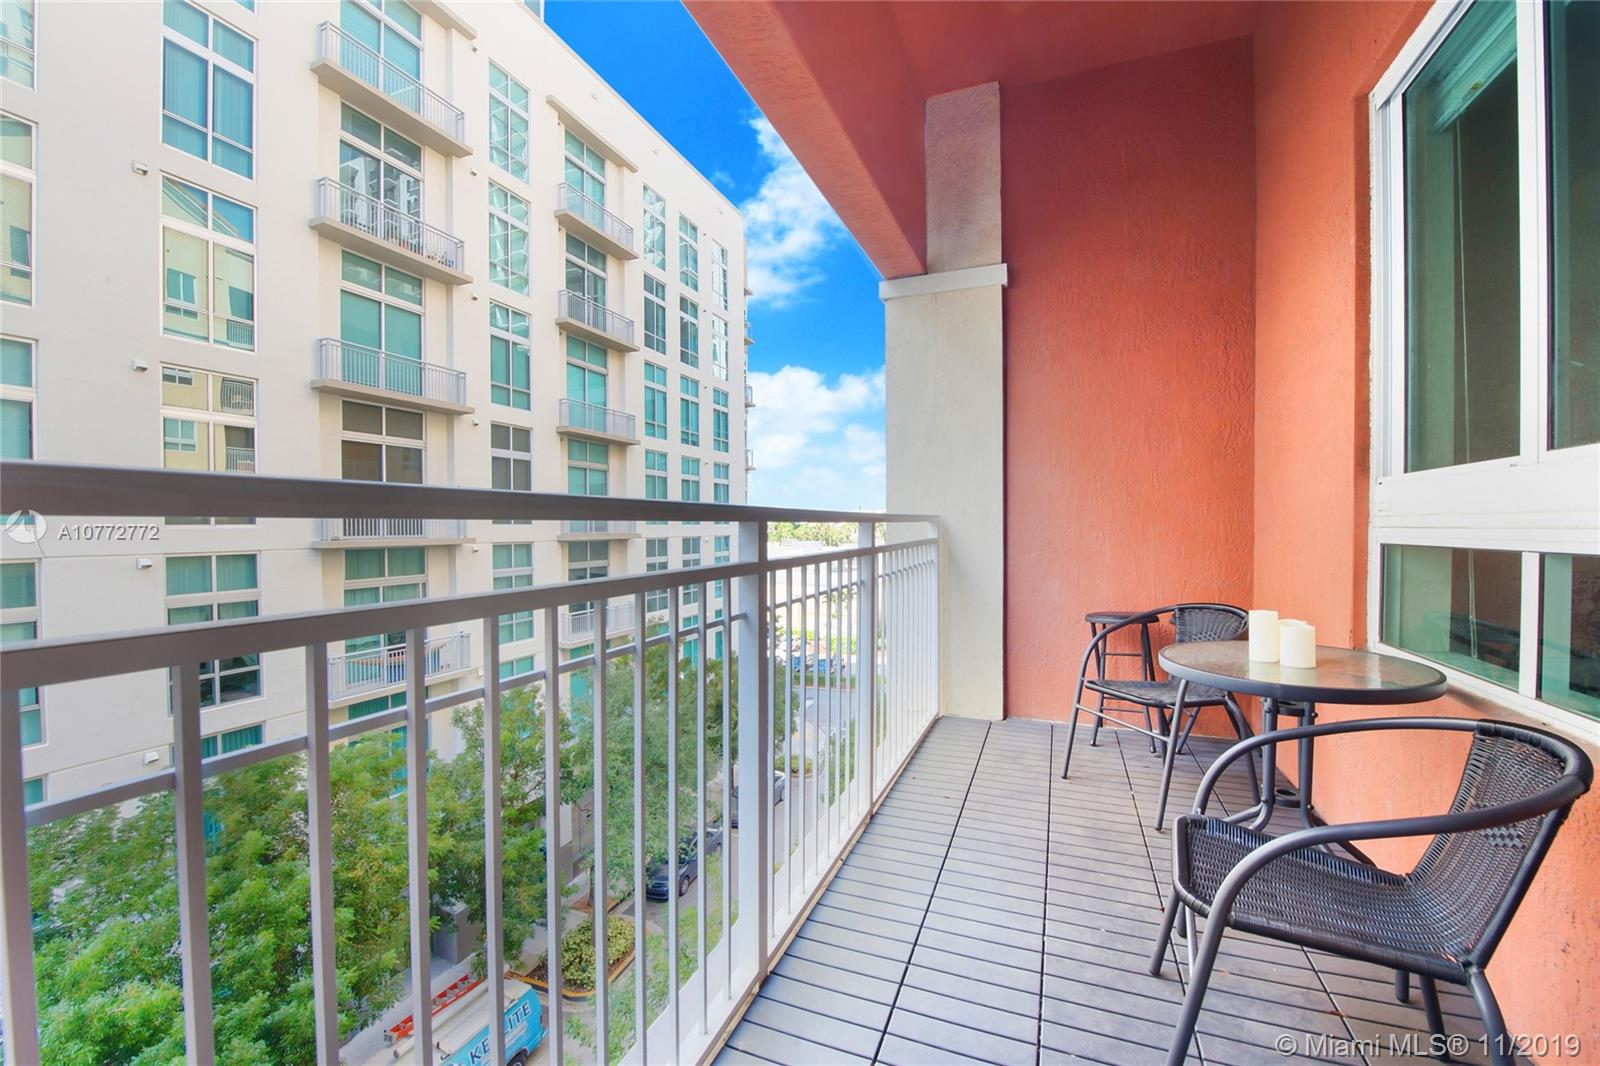 7350 SW 89th St, Kendall, Florida